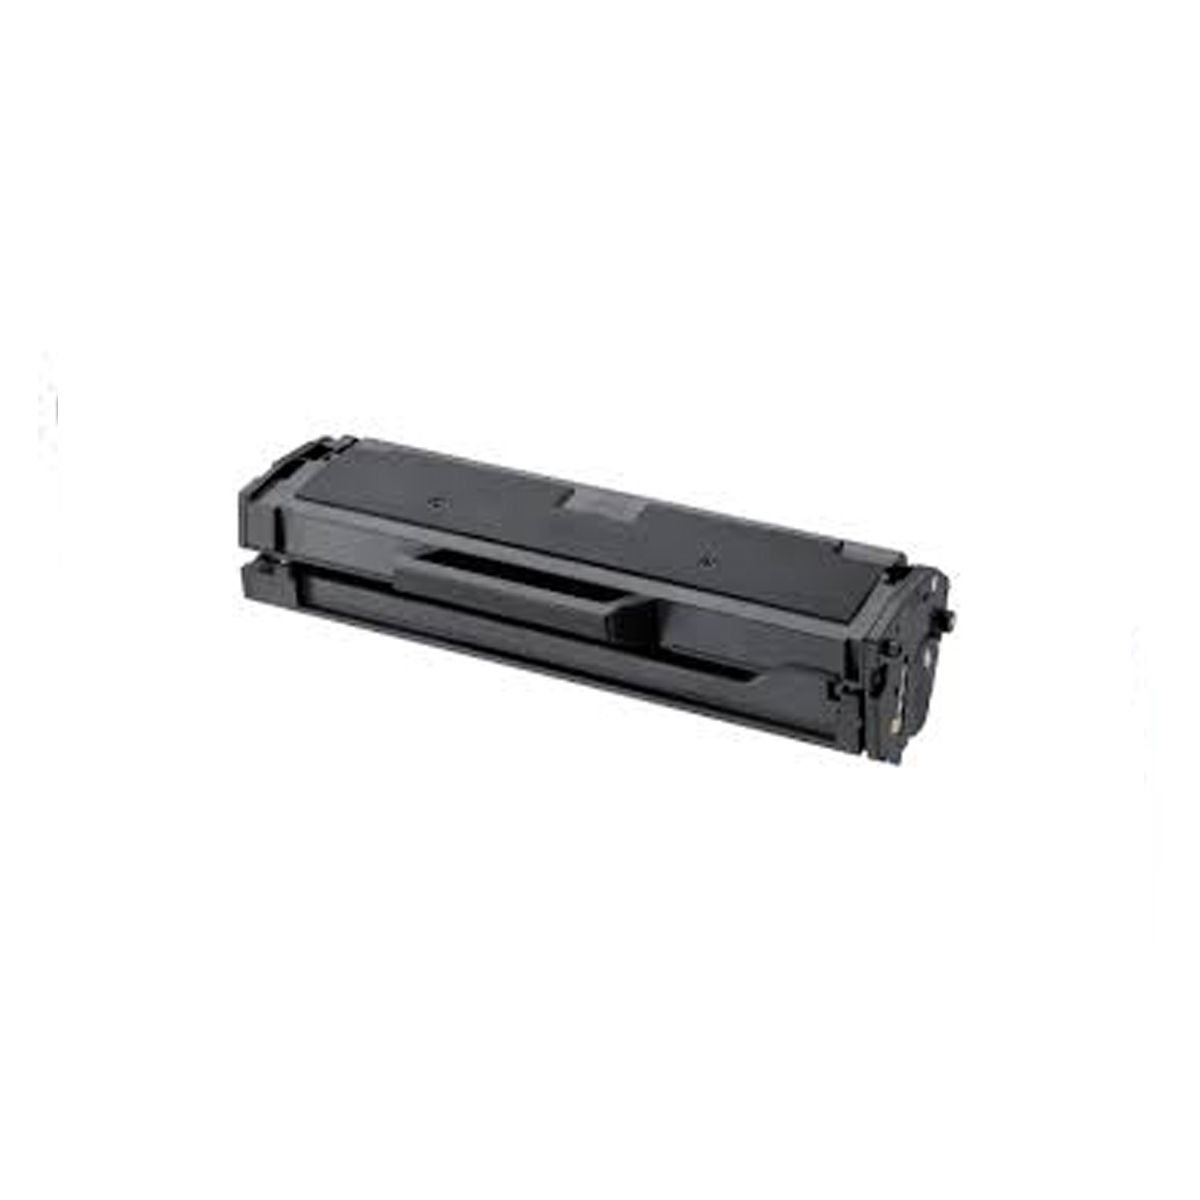 T3-2KUO-ZDSX - Toner Samsung D111S D111 111 - M2020 M2070 - Compativel